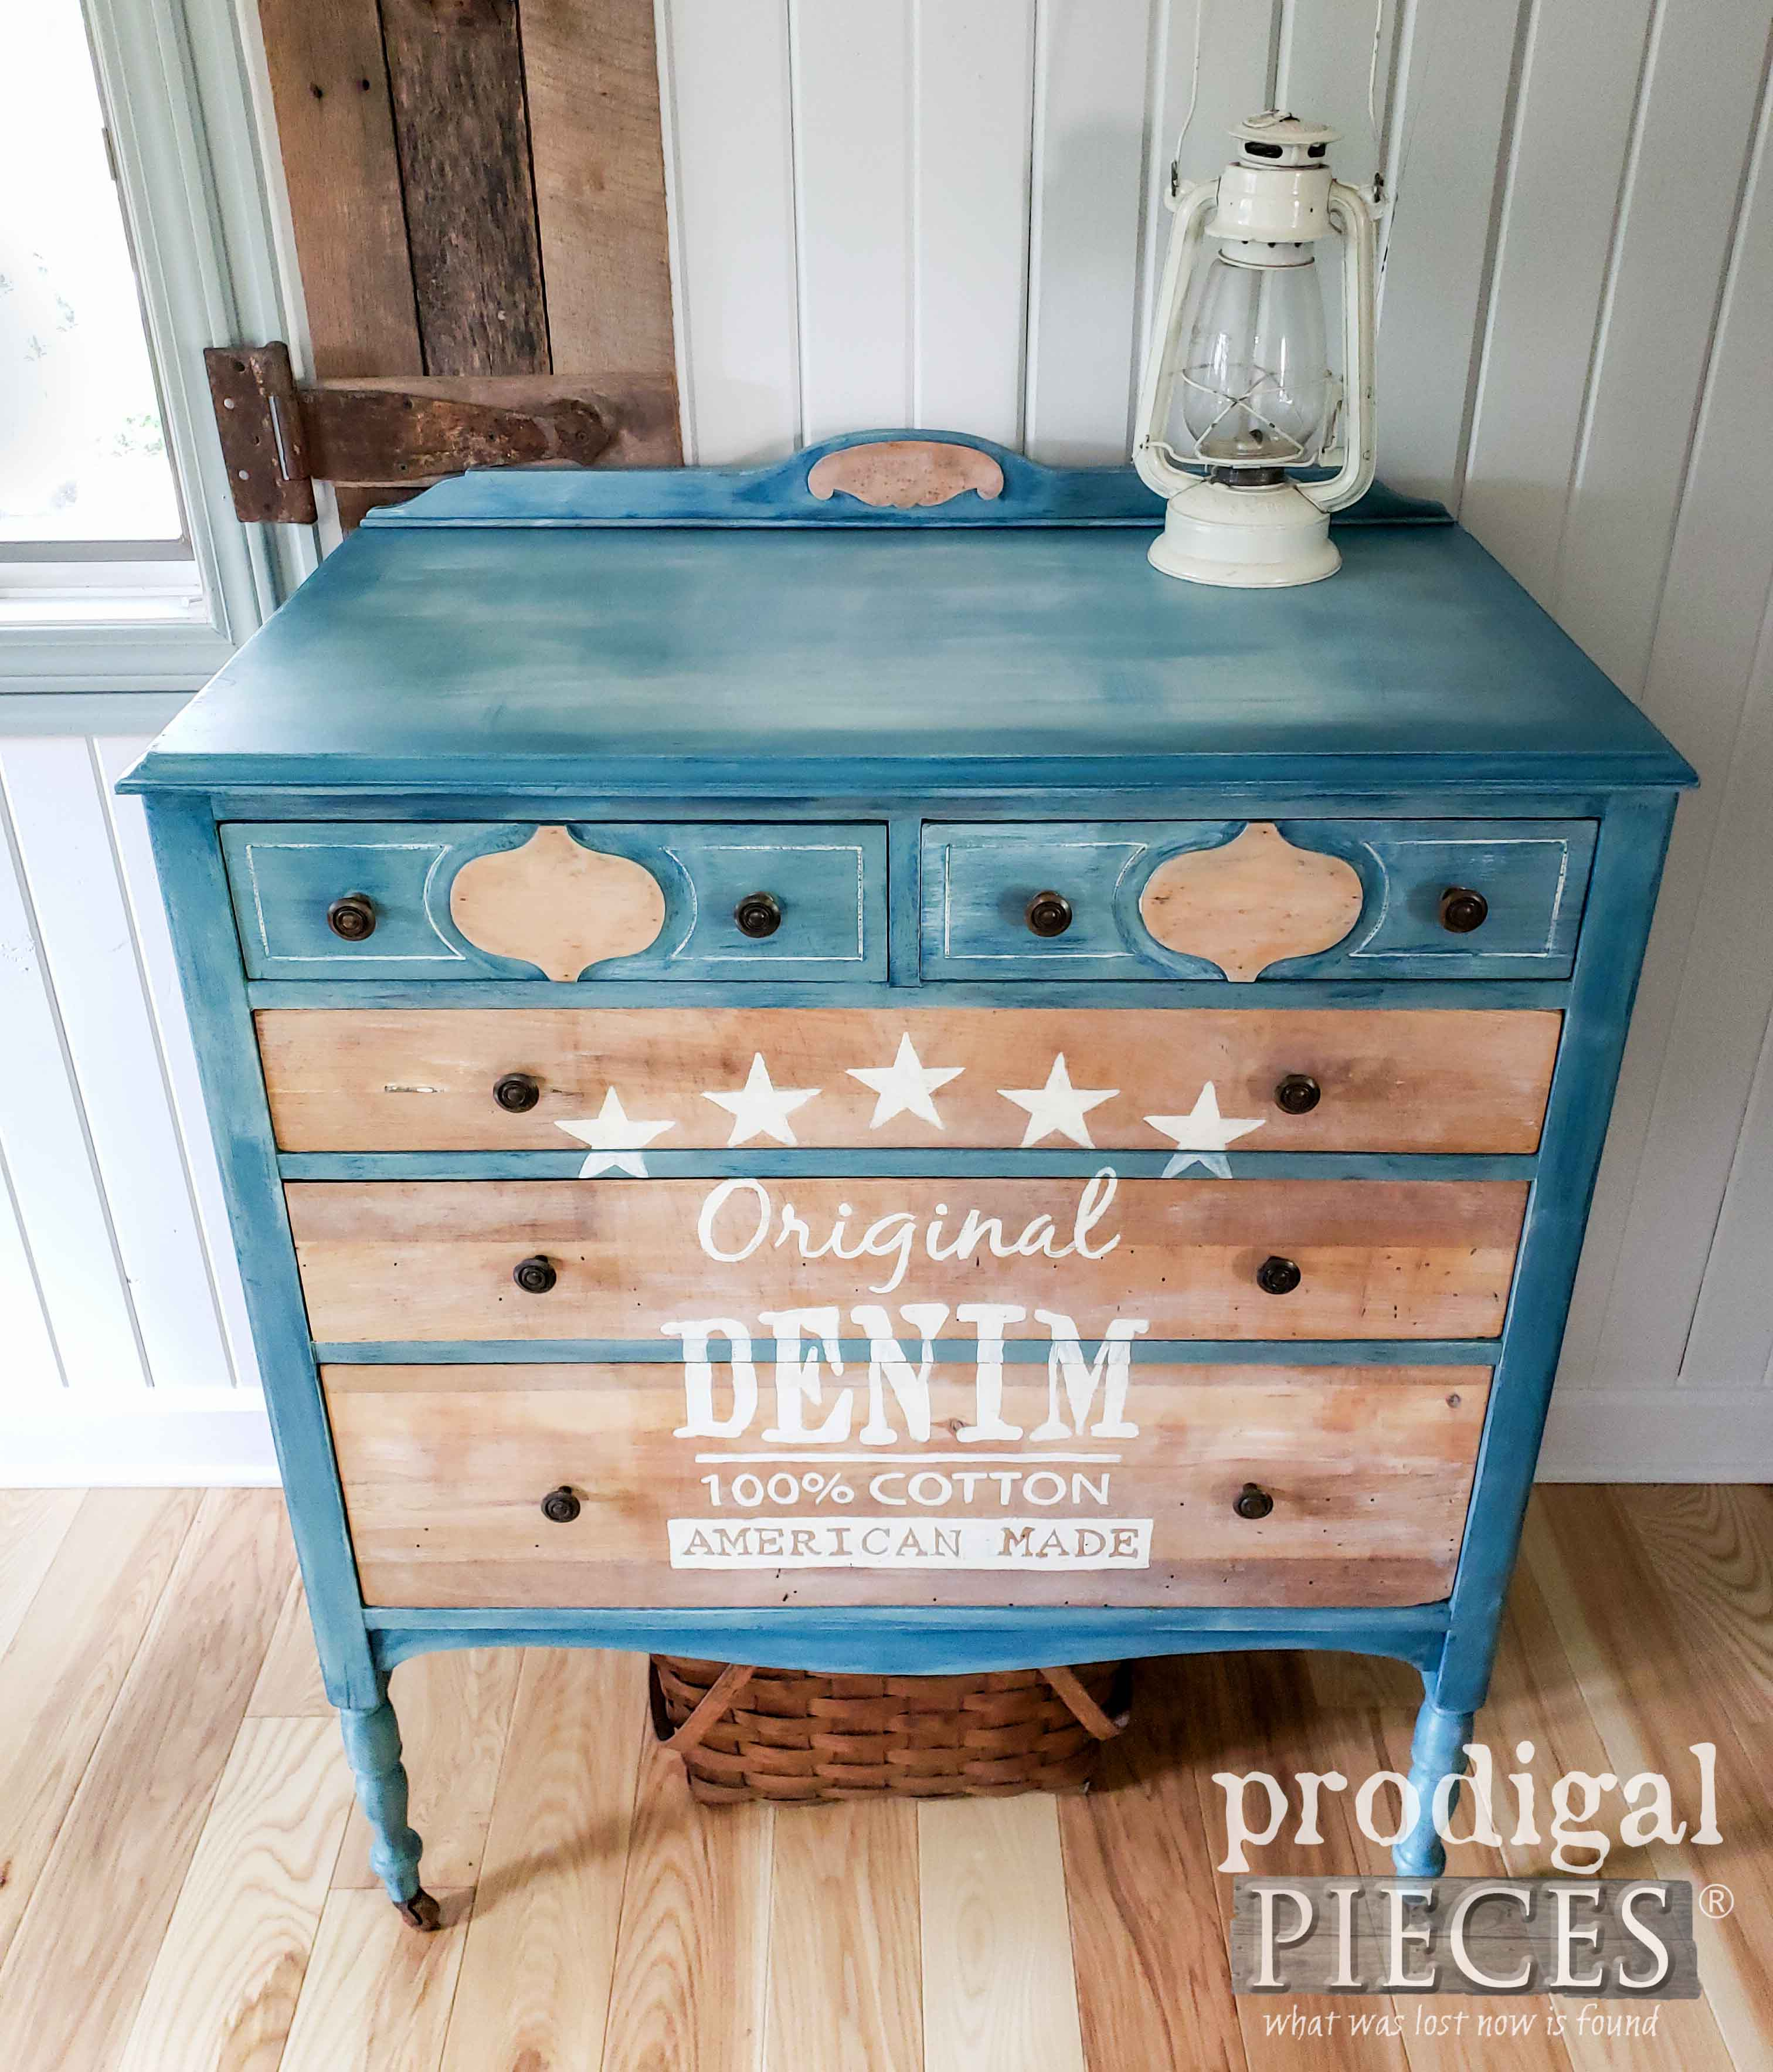 Top View of DIY Denim Paint Chest of Drawers by Larissa of Prodigal Pieces | prodigalpieces.com #prodigalpieces #diy #furniture #farmhouse #denim #home #homedecor